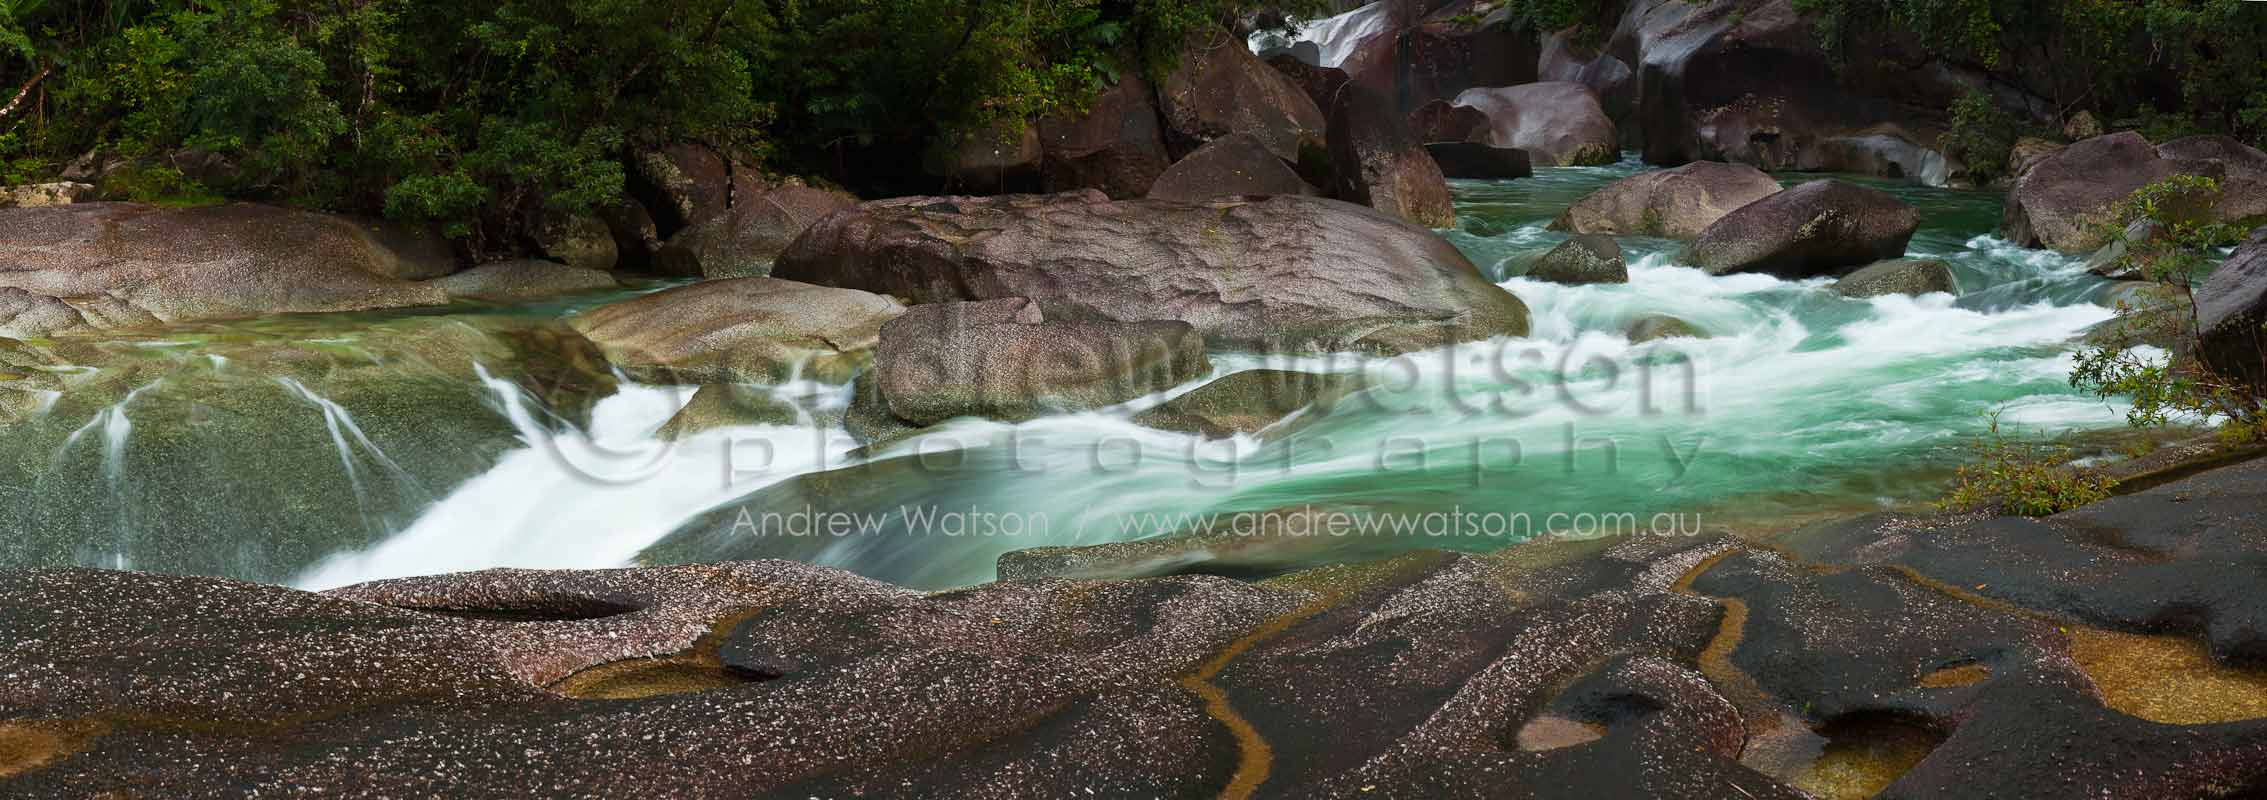 Devil's Pool at Babinda BouldersBabinda, North QueenslandImage available for licensing or as a fine-art print... please enquire